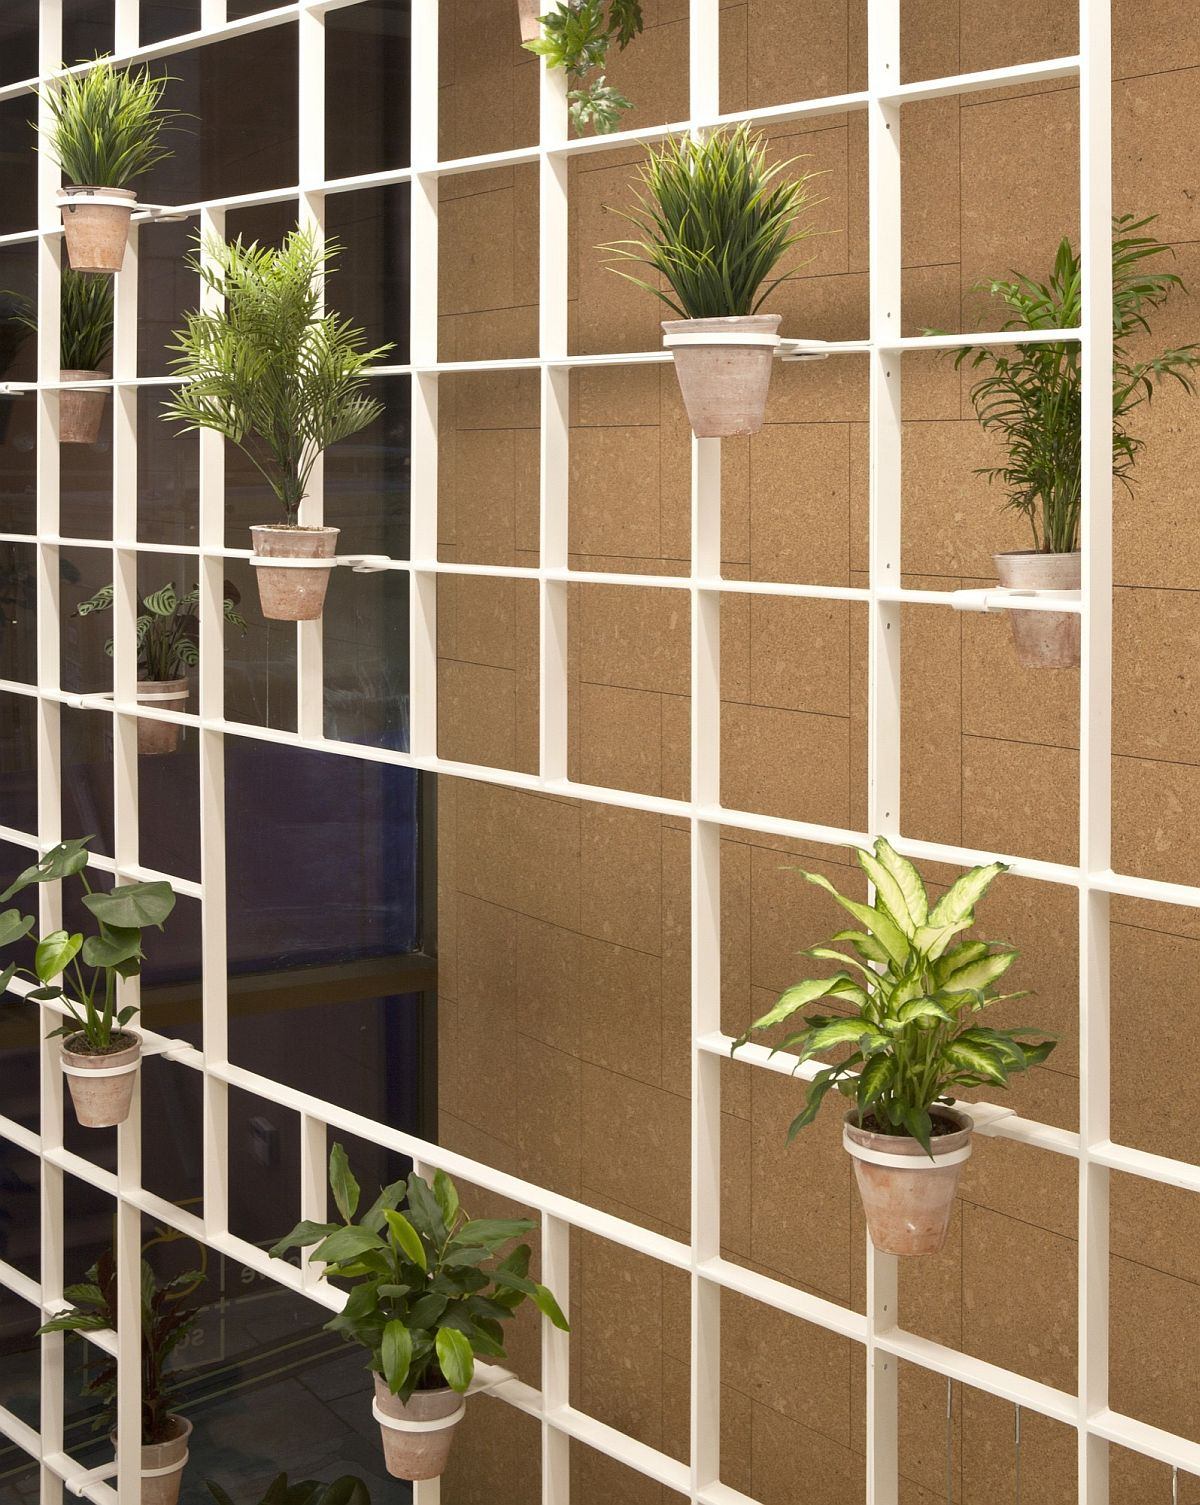 Innovative-design-of-the-grid-offers-ample-display-space-for-greenery